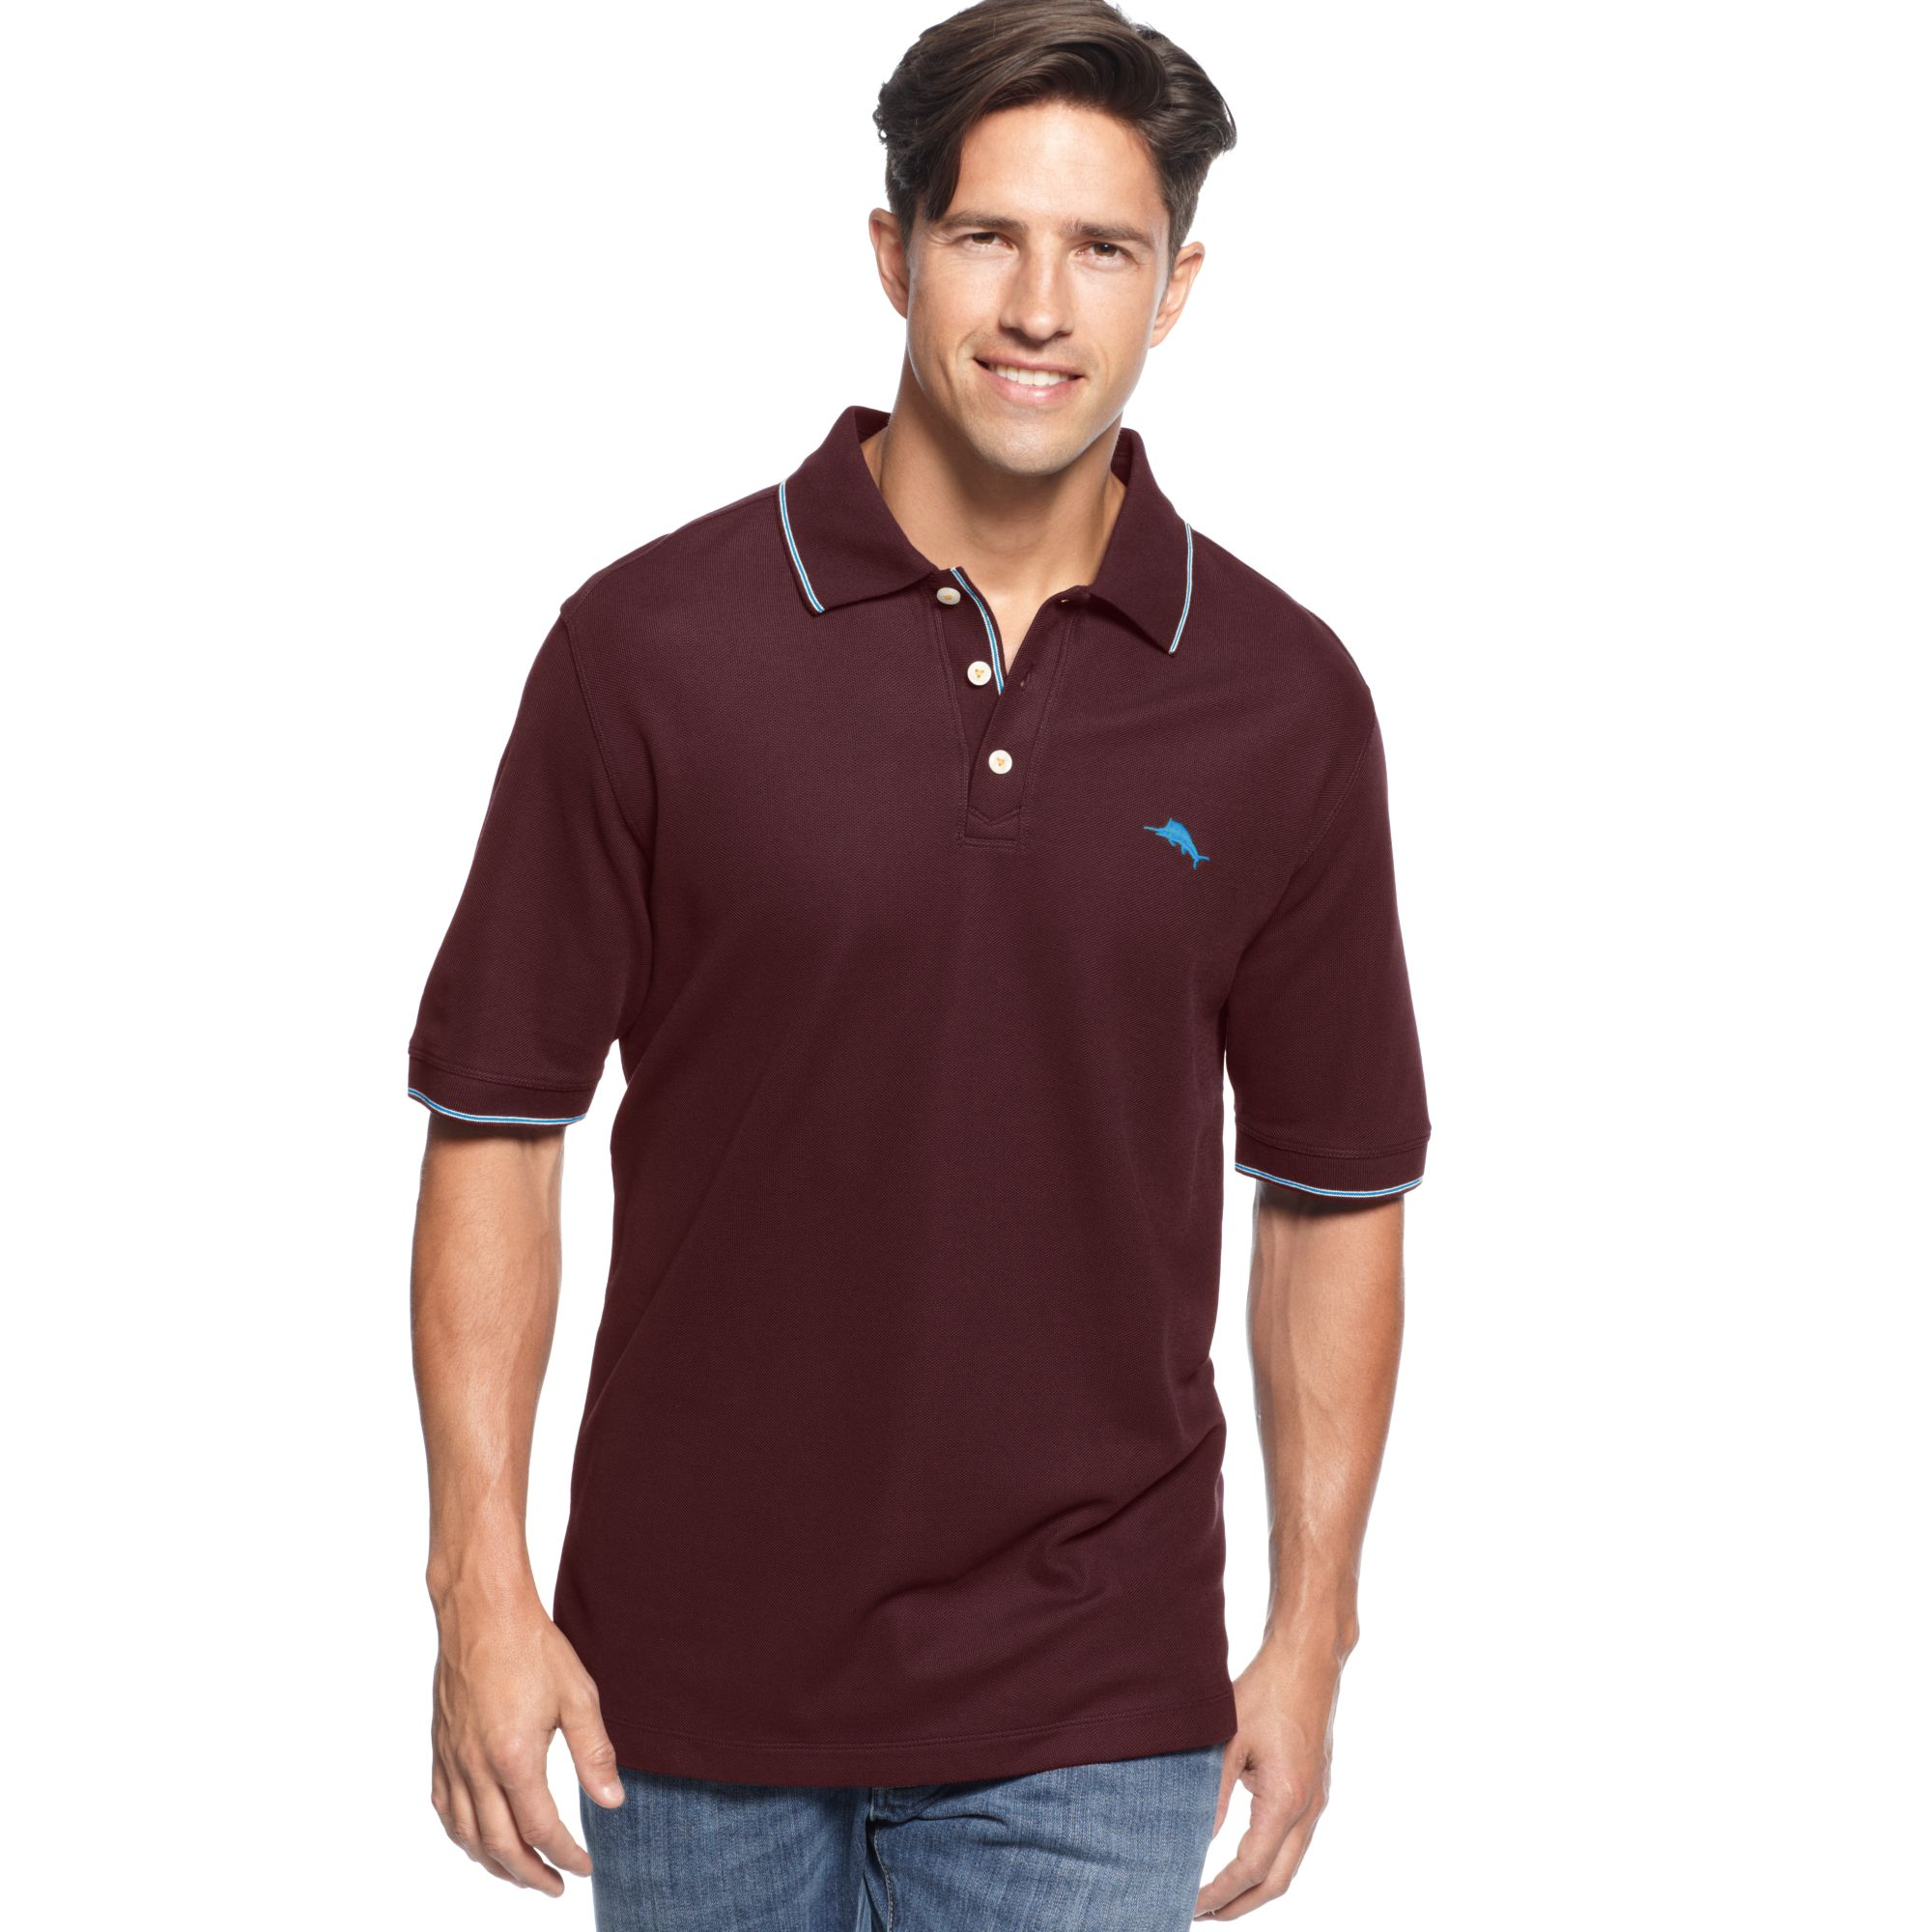 Tommy Bahama Courtside Vip Polo Shirt In Purple For Men